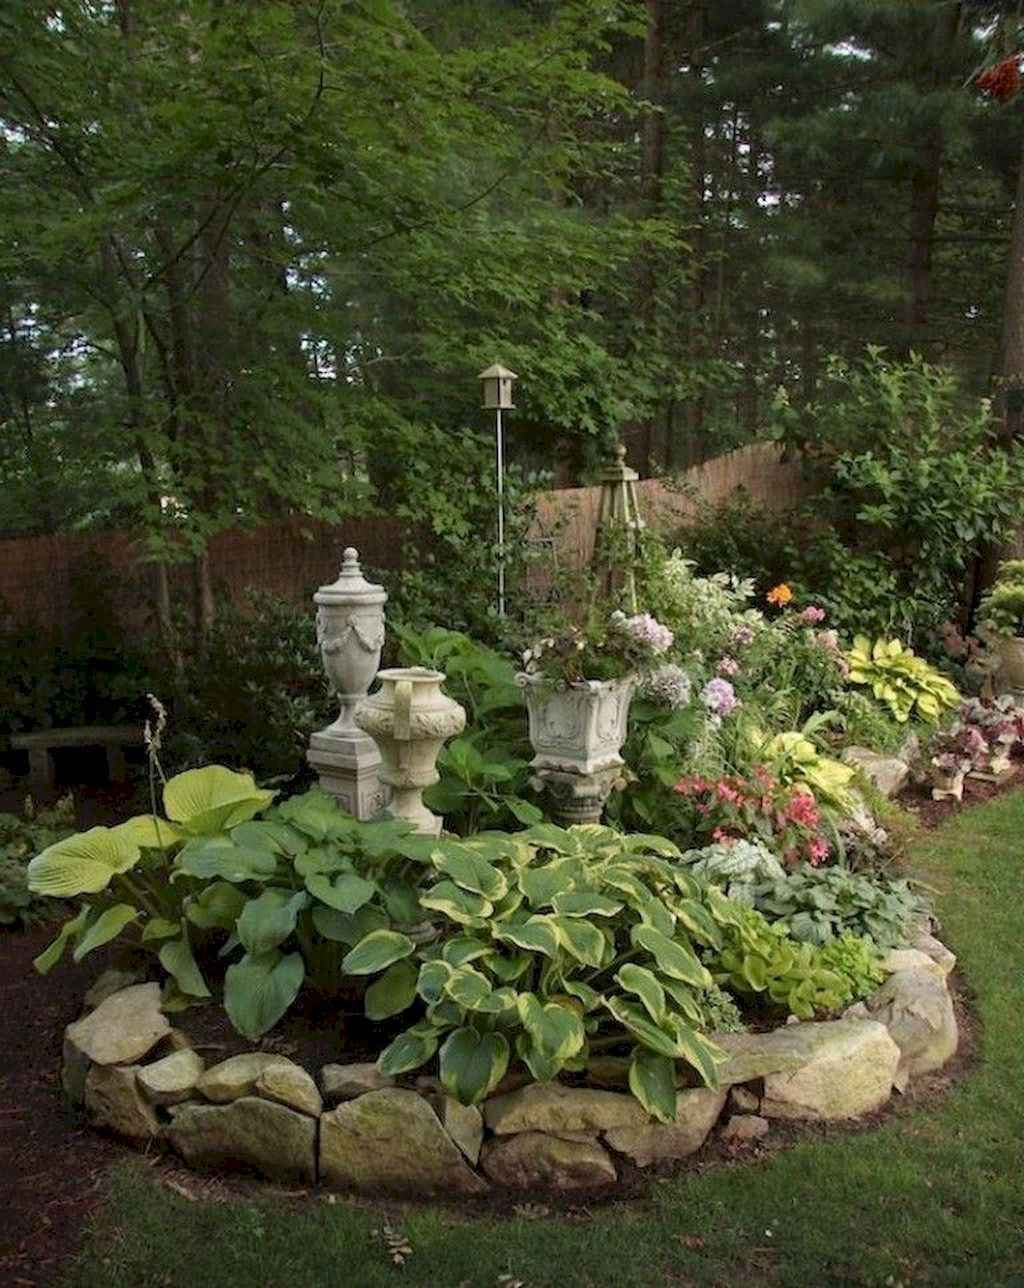 Cheap Landscaping Ideas Backyard Landscaping Yard: Cheap Landscaping Ideas For Your Front Yard That Will Inspire You (5)